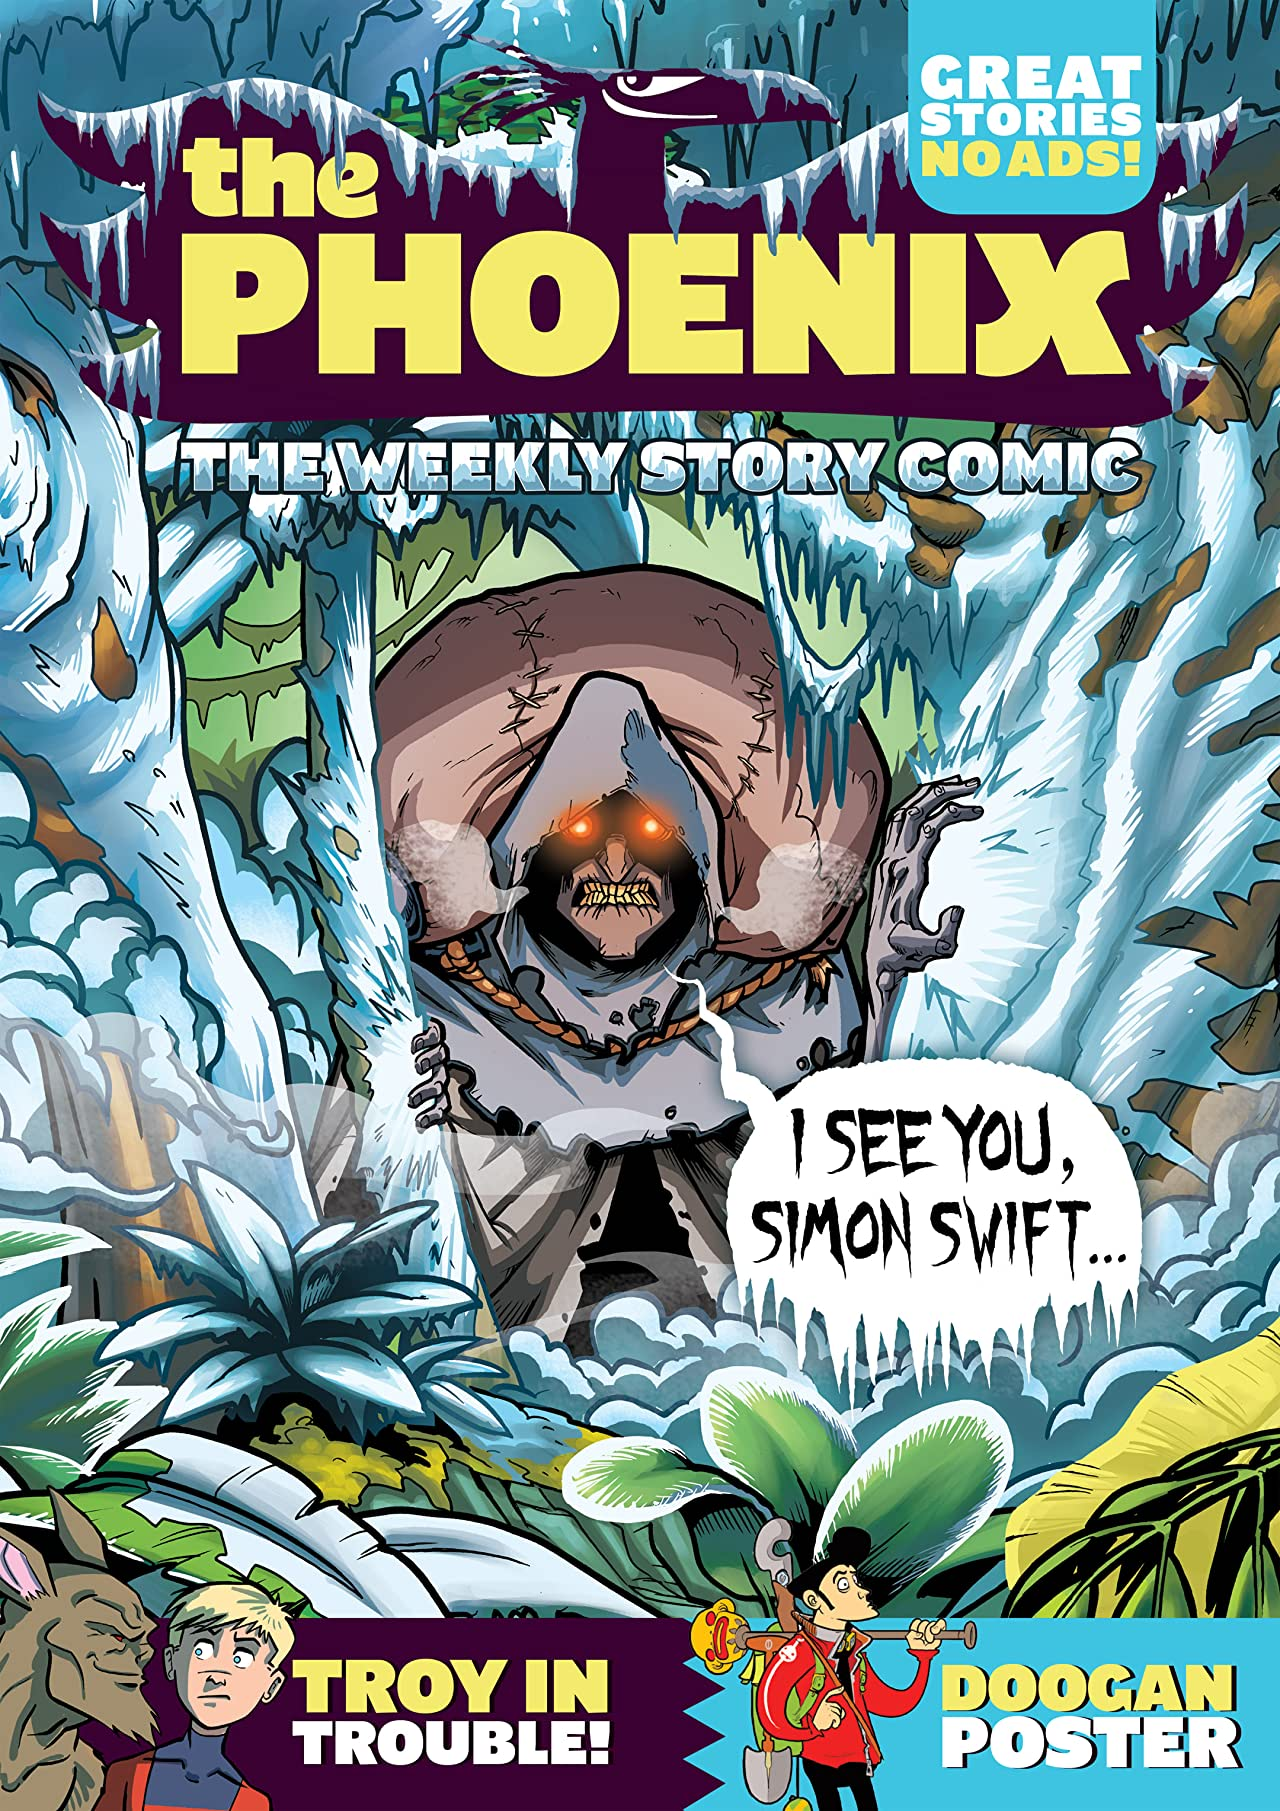 The Phoenix #80: The Weekly Story Comic